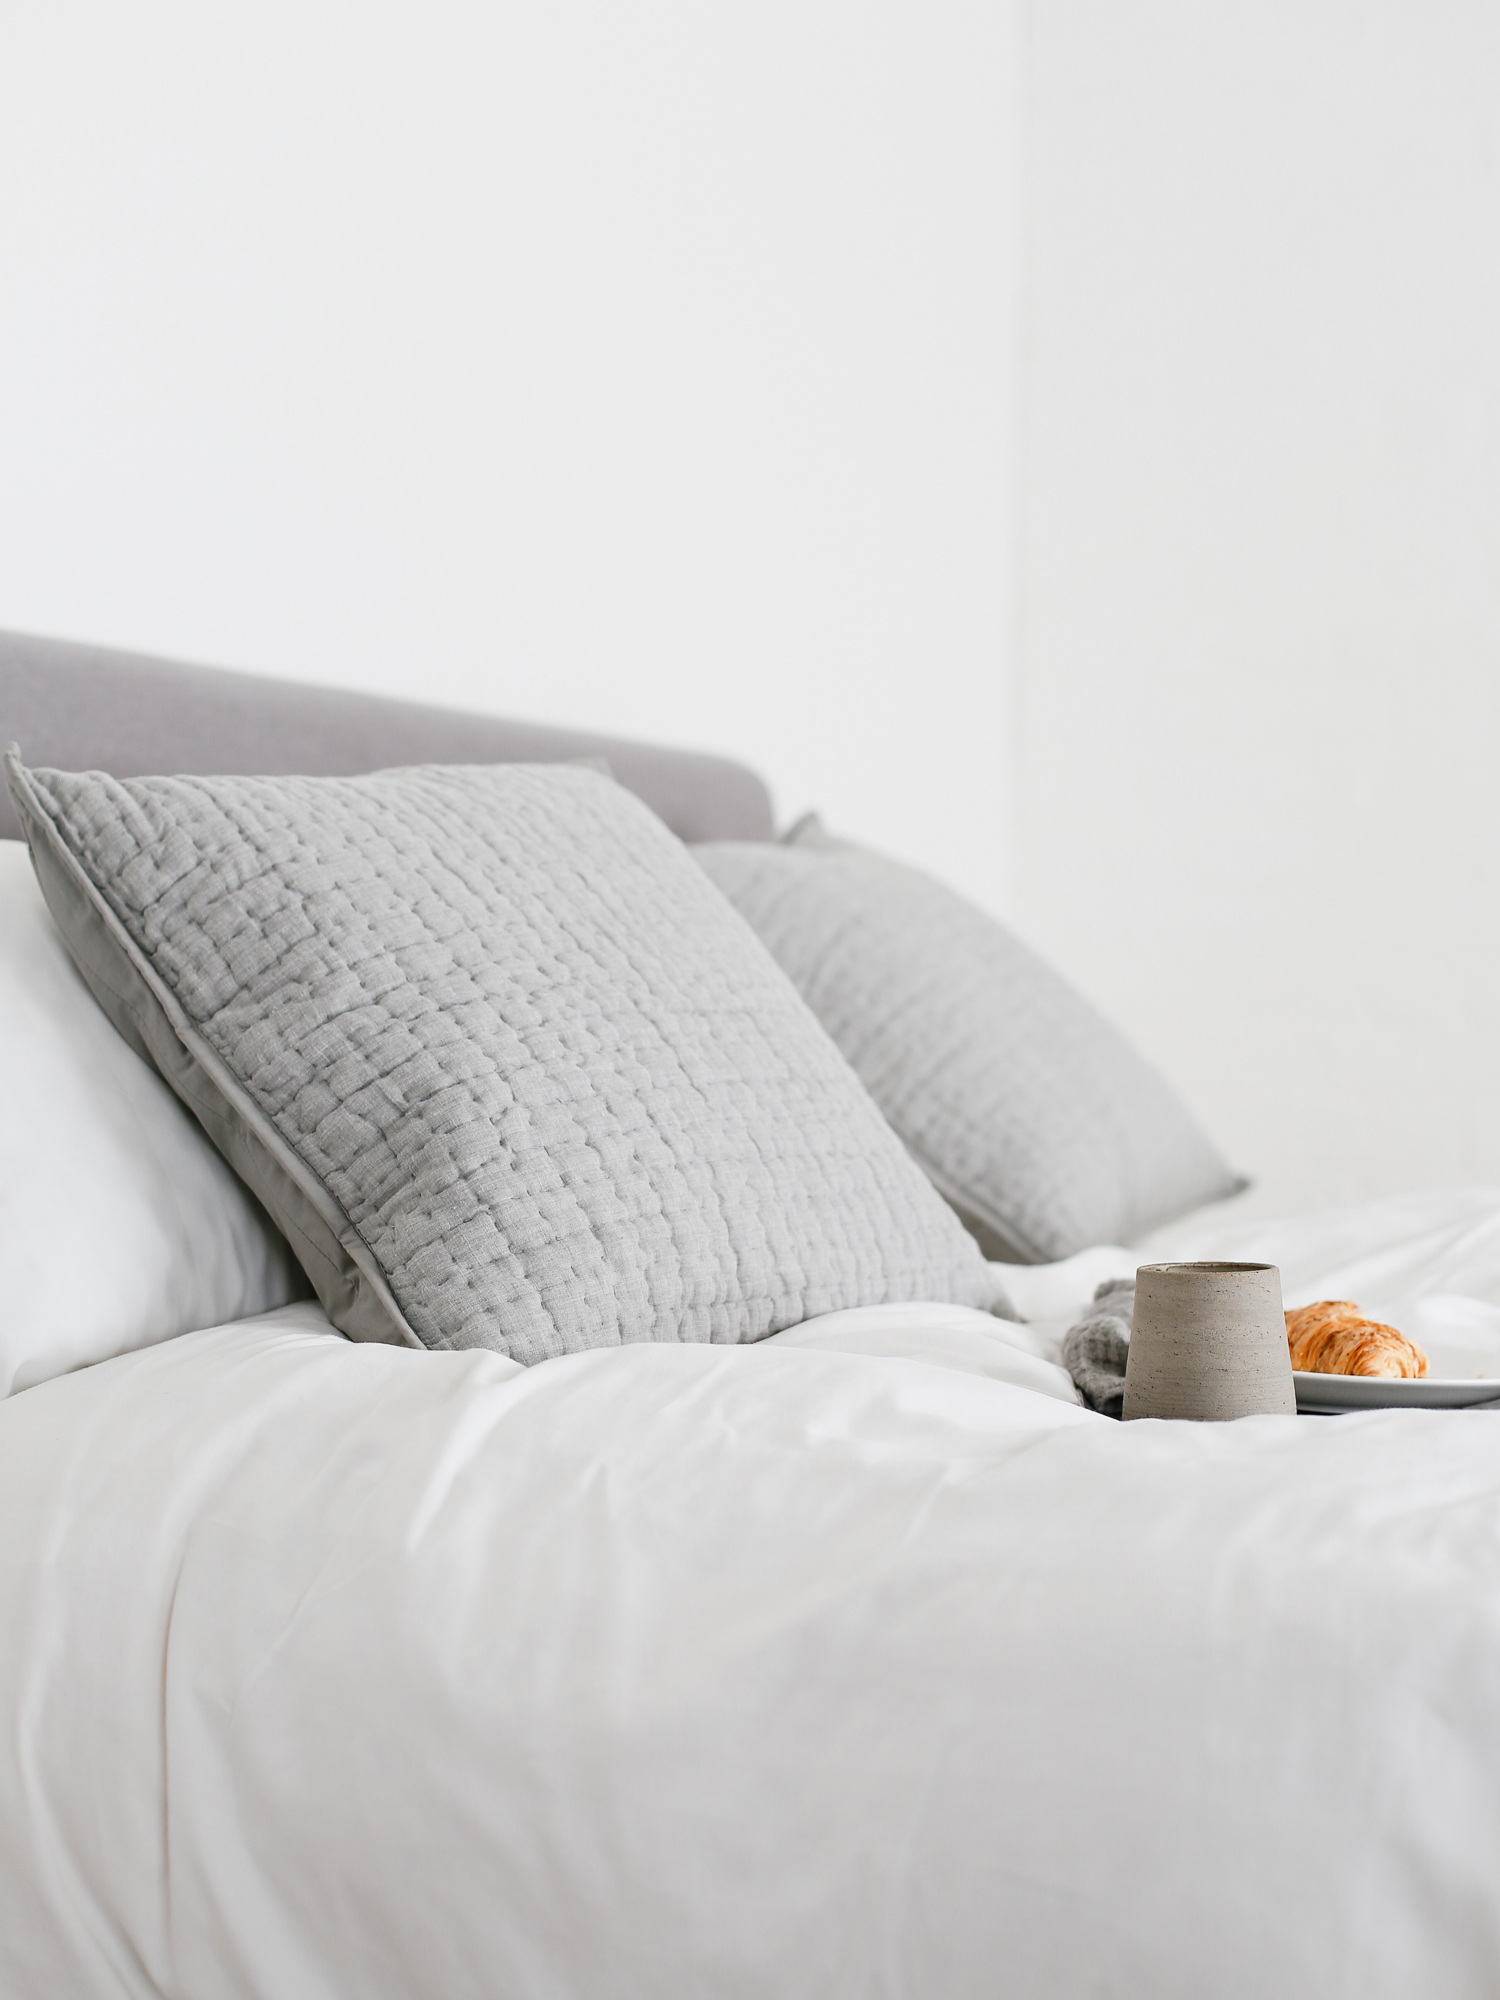 Croissant and grey pillows